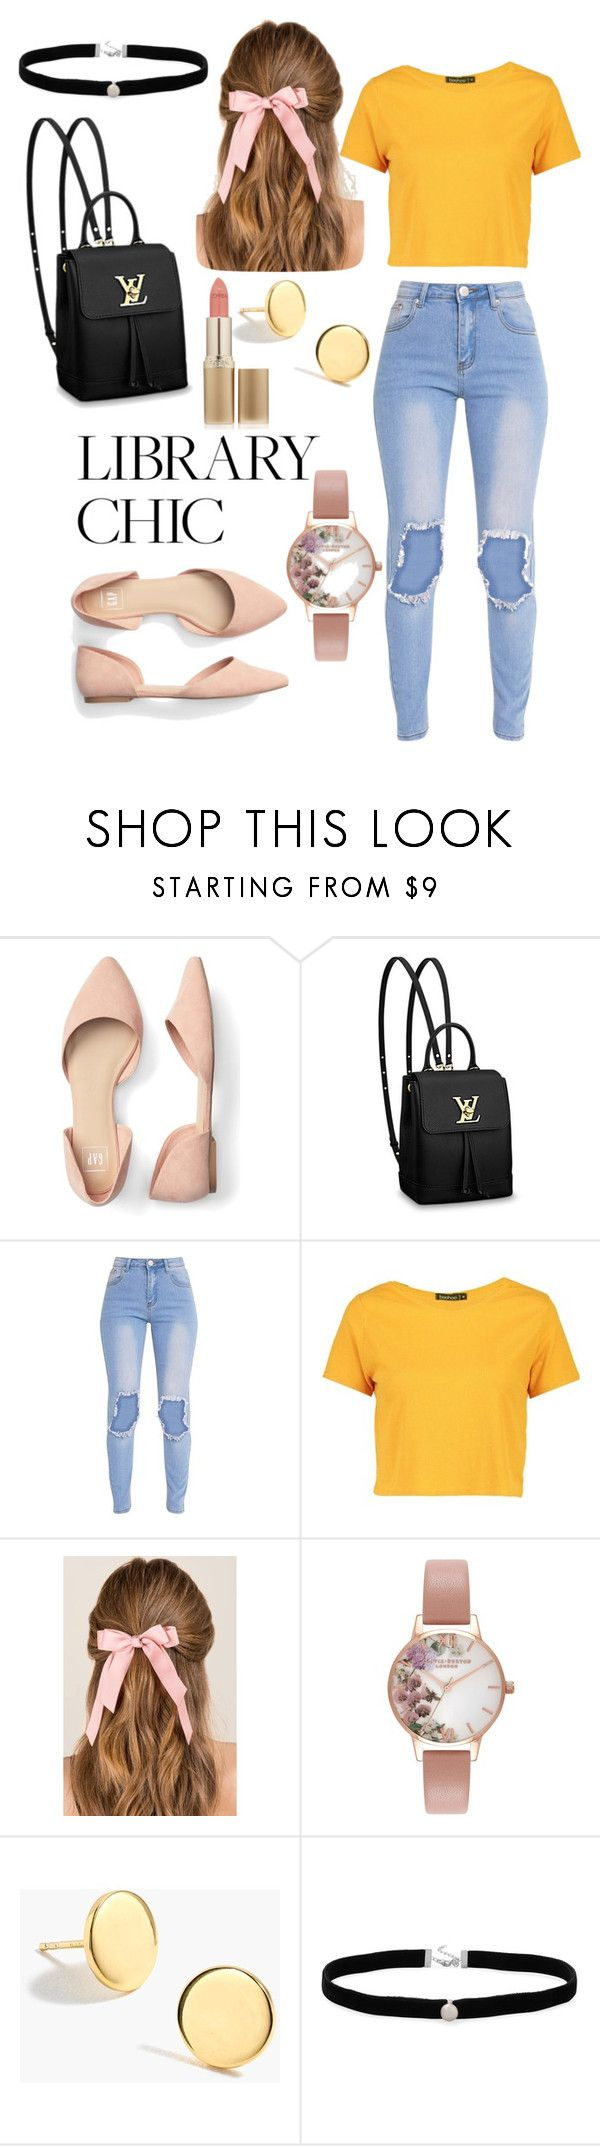 """Bright day ahead"" by queenrona ❤ liked on Polyvore featuring Louis Vuitton, Boohoo, Francesca's, Olivia Burton, J.Crew, Amanda Rose Collection and L'Oréal Paris"